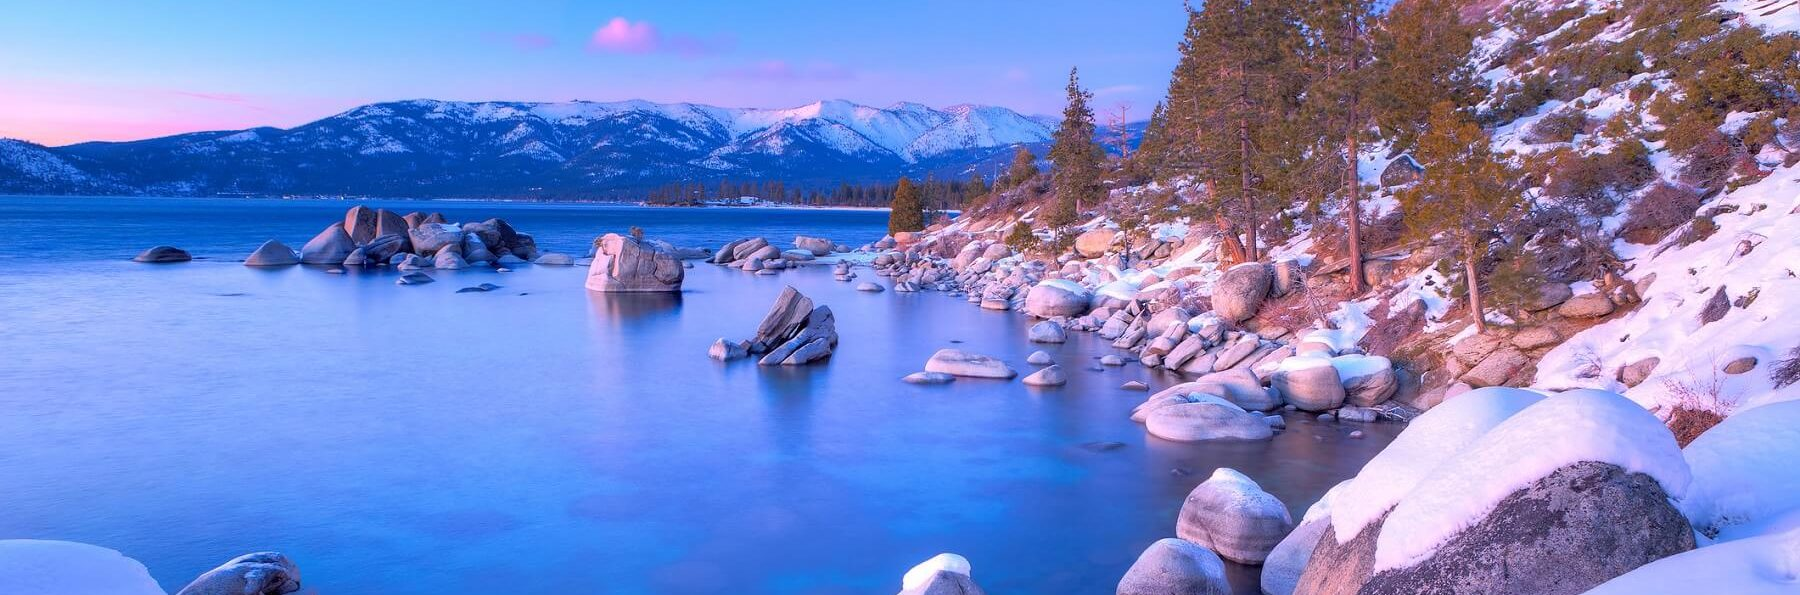 winter tahoe